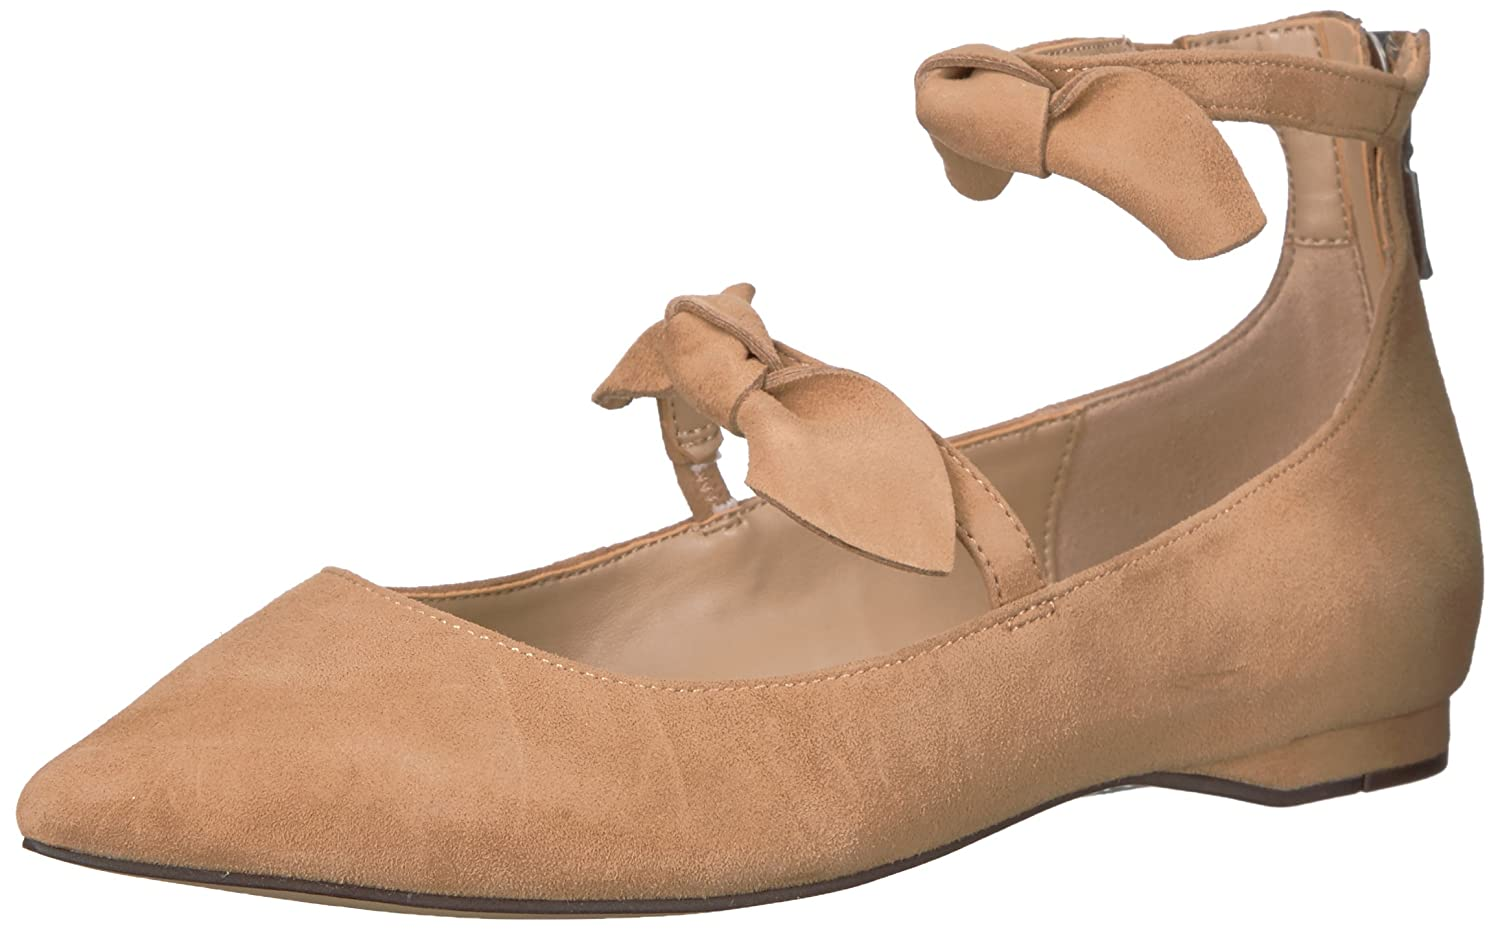 The Fix Women's Emilia Double Bow Pointed Toe Flat